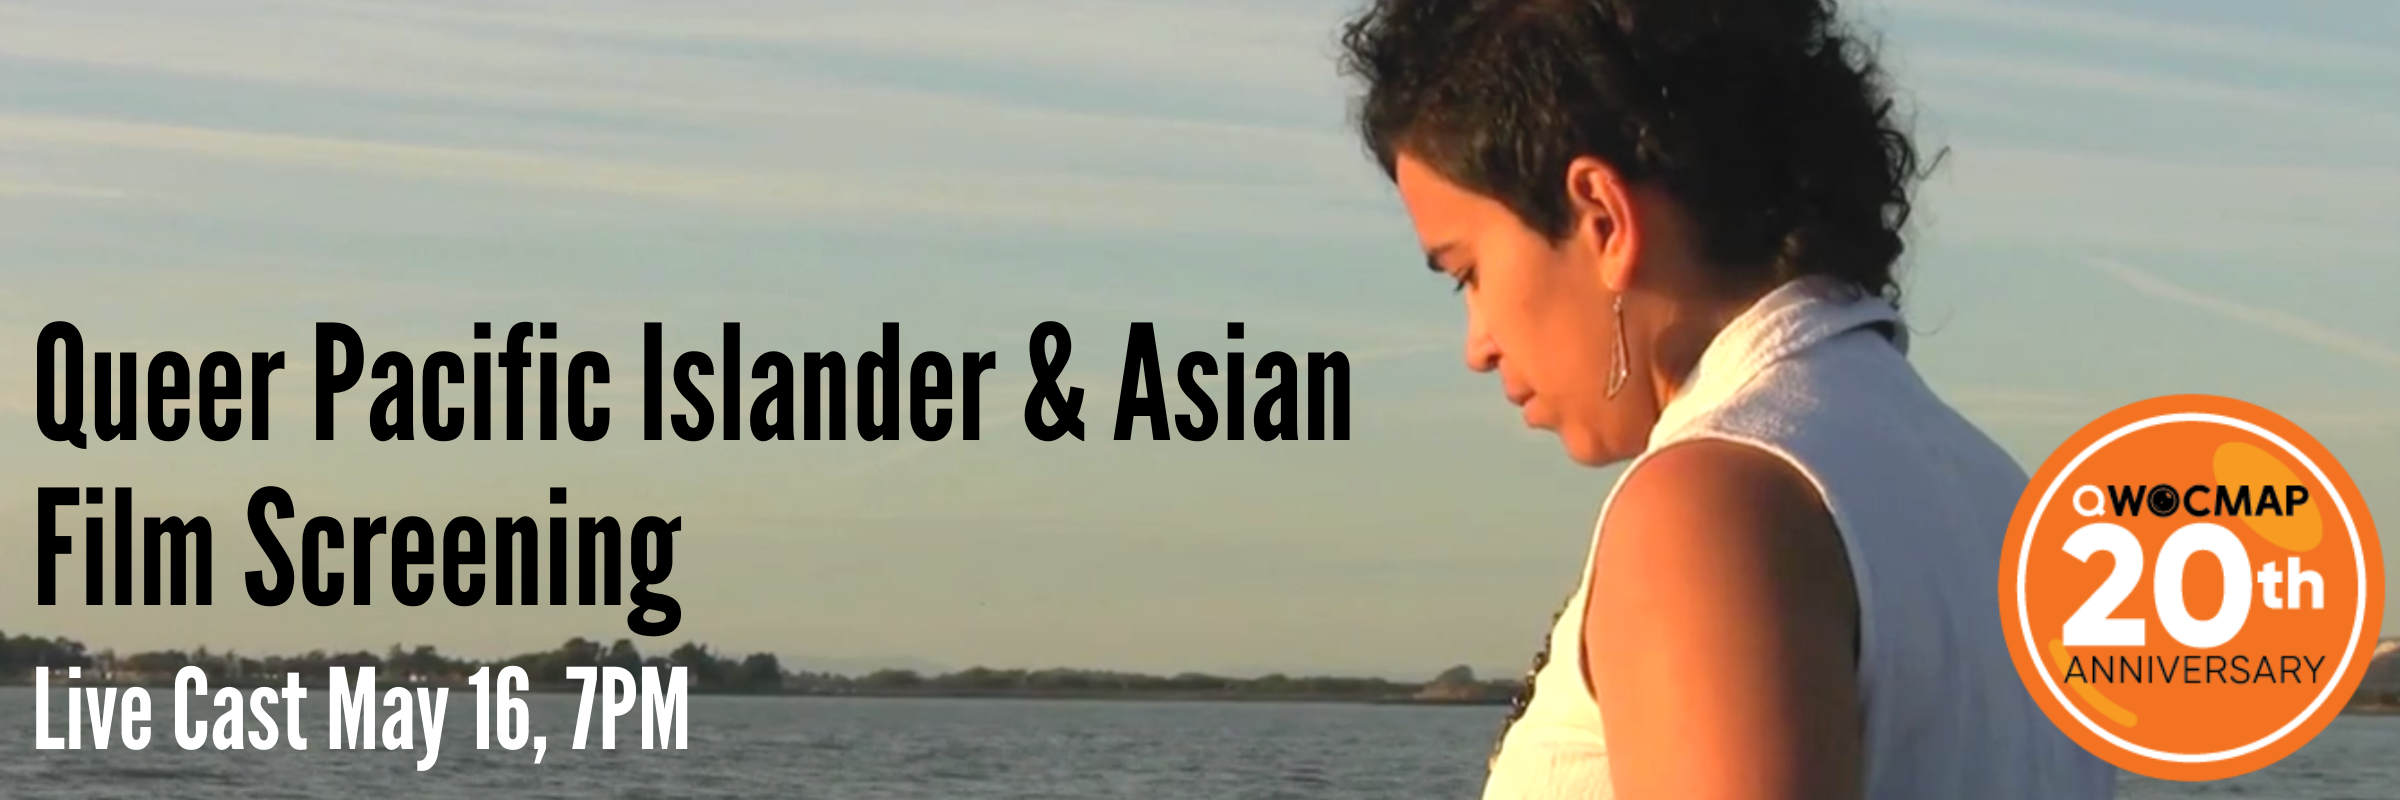 A Native Hawaiian woman with medium brown skin and short black curly hair is wearing long triangle shaped earrings and a white collared tank top. She is in profile, looking down and turned slightly away from the camera. She is facing blue gray water with land behind it. On the lower left, black and white text reads Queer Pacific Islander & Asian Film Screening Live Cast May 16, 7PM PST. On the lower right, an orange circle with the QWOCMAP logo and white text reads 20th anniversary.